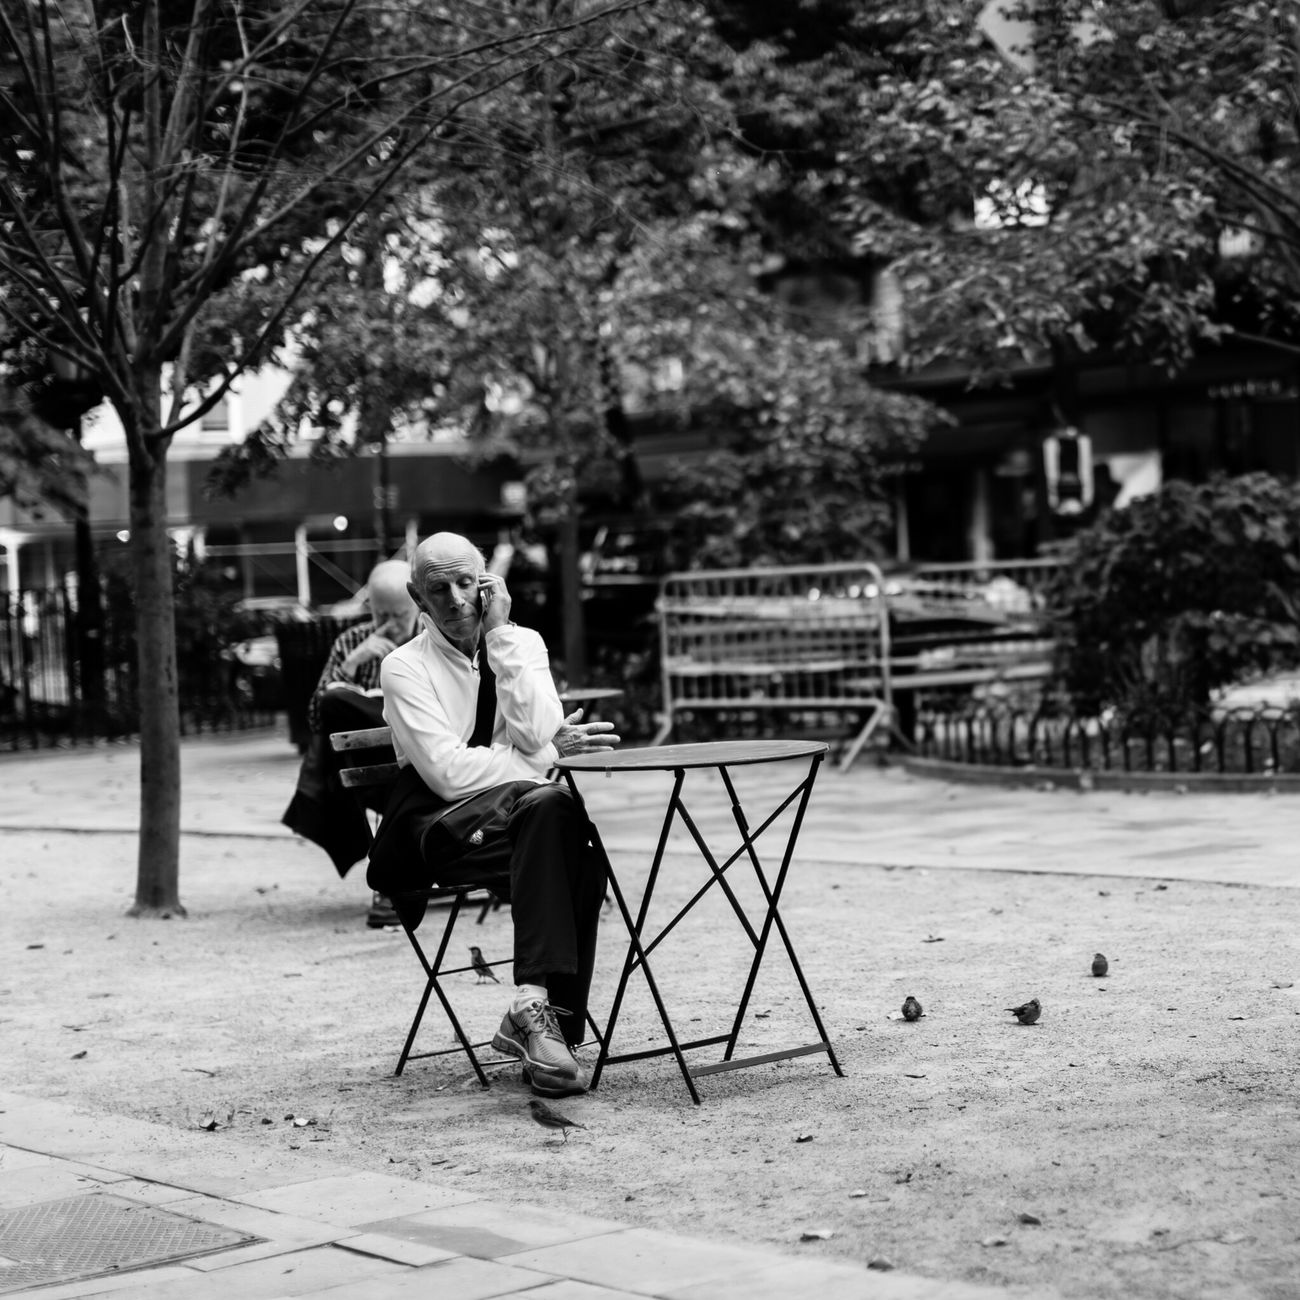 Street Portrait 8908 | shot in NYC | 50 mm Real People Bench Sitting Full Length Outdoors Tree One Person Day People Adult Streetphotography Magnolia Bakery Black And White City Life New York New York City Blackandwhite Canon Manhattan